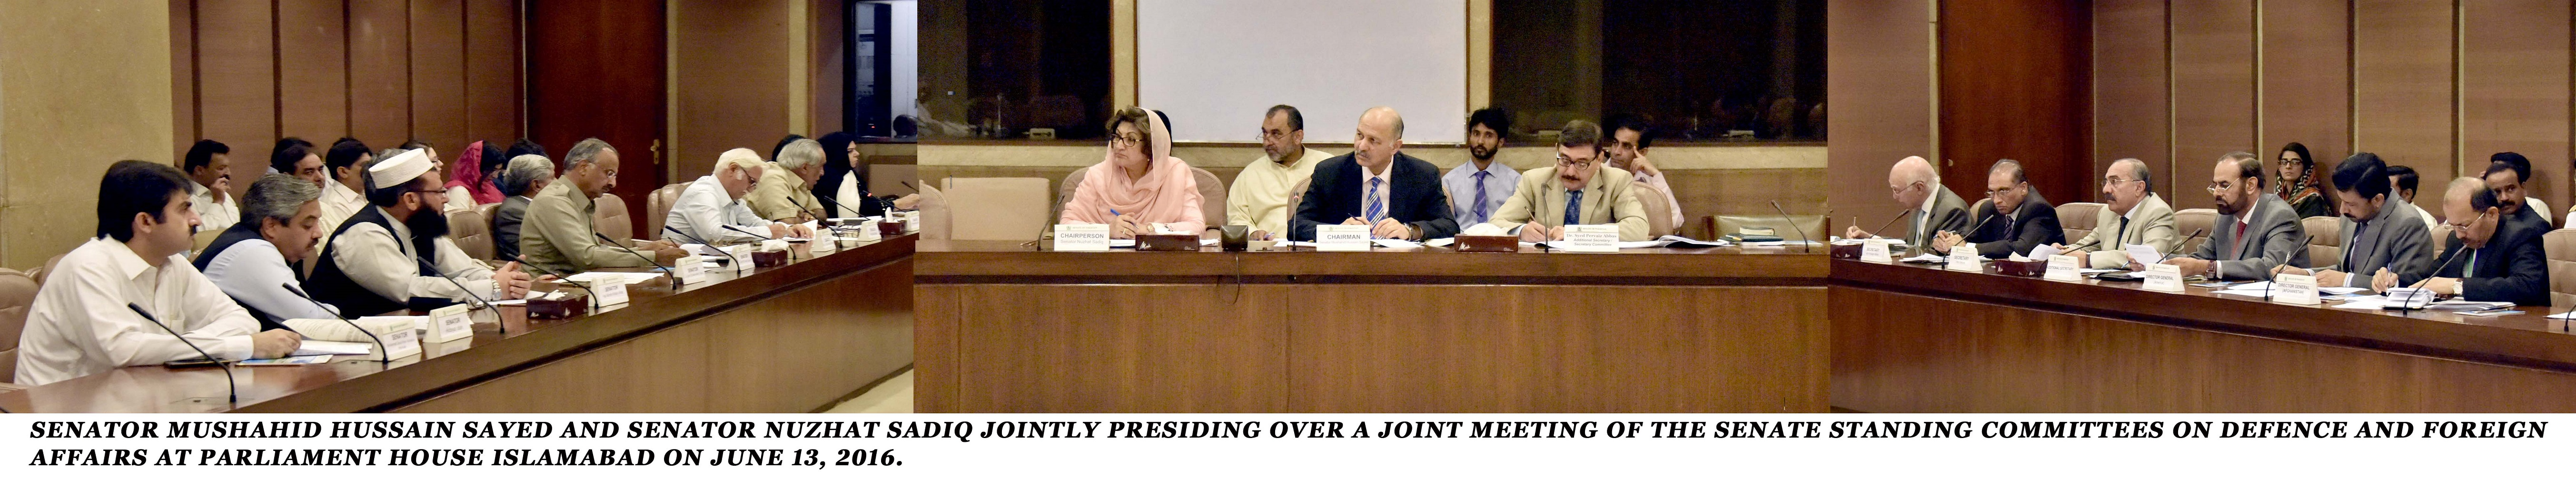 Joint meeting of Senate Defence and Foreign Affairs ...